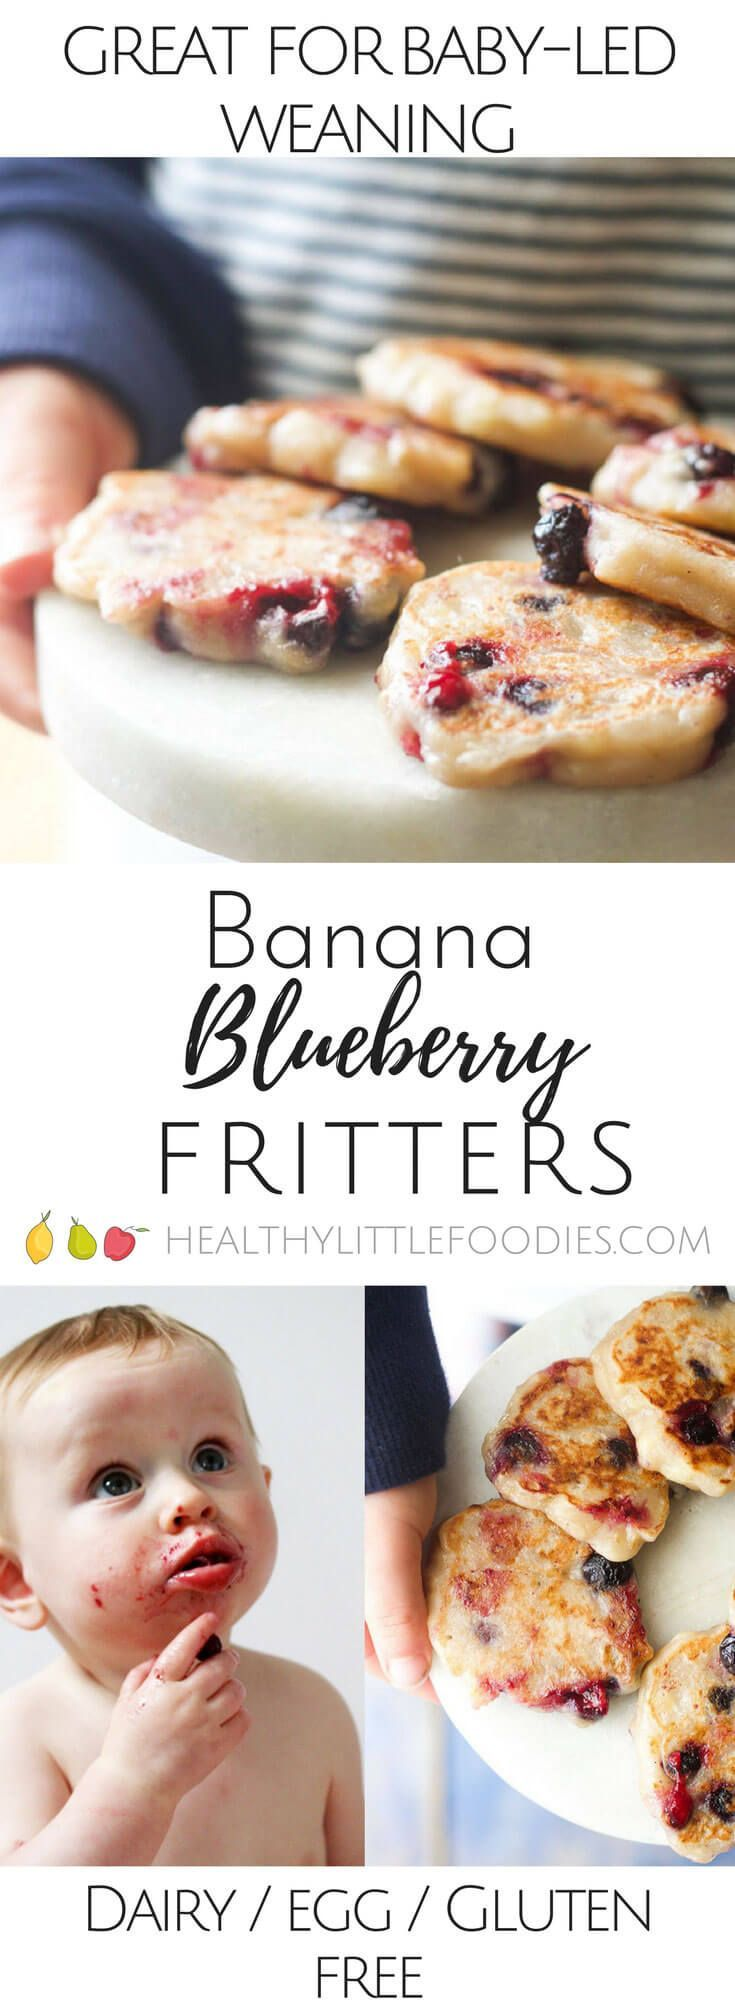 Banana Blueberry Fritters. Only 3 ingredients . Dairy free, gluten free and egg free and no refined sugar. Great for kids and for baby led weaning. via Healthy Little Foodies